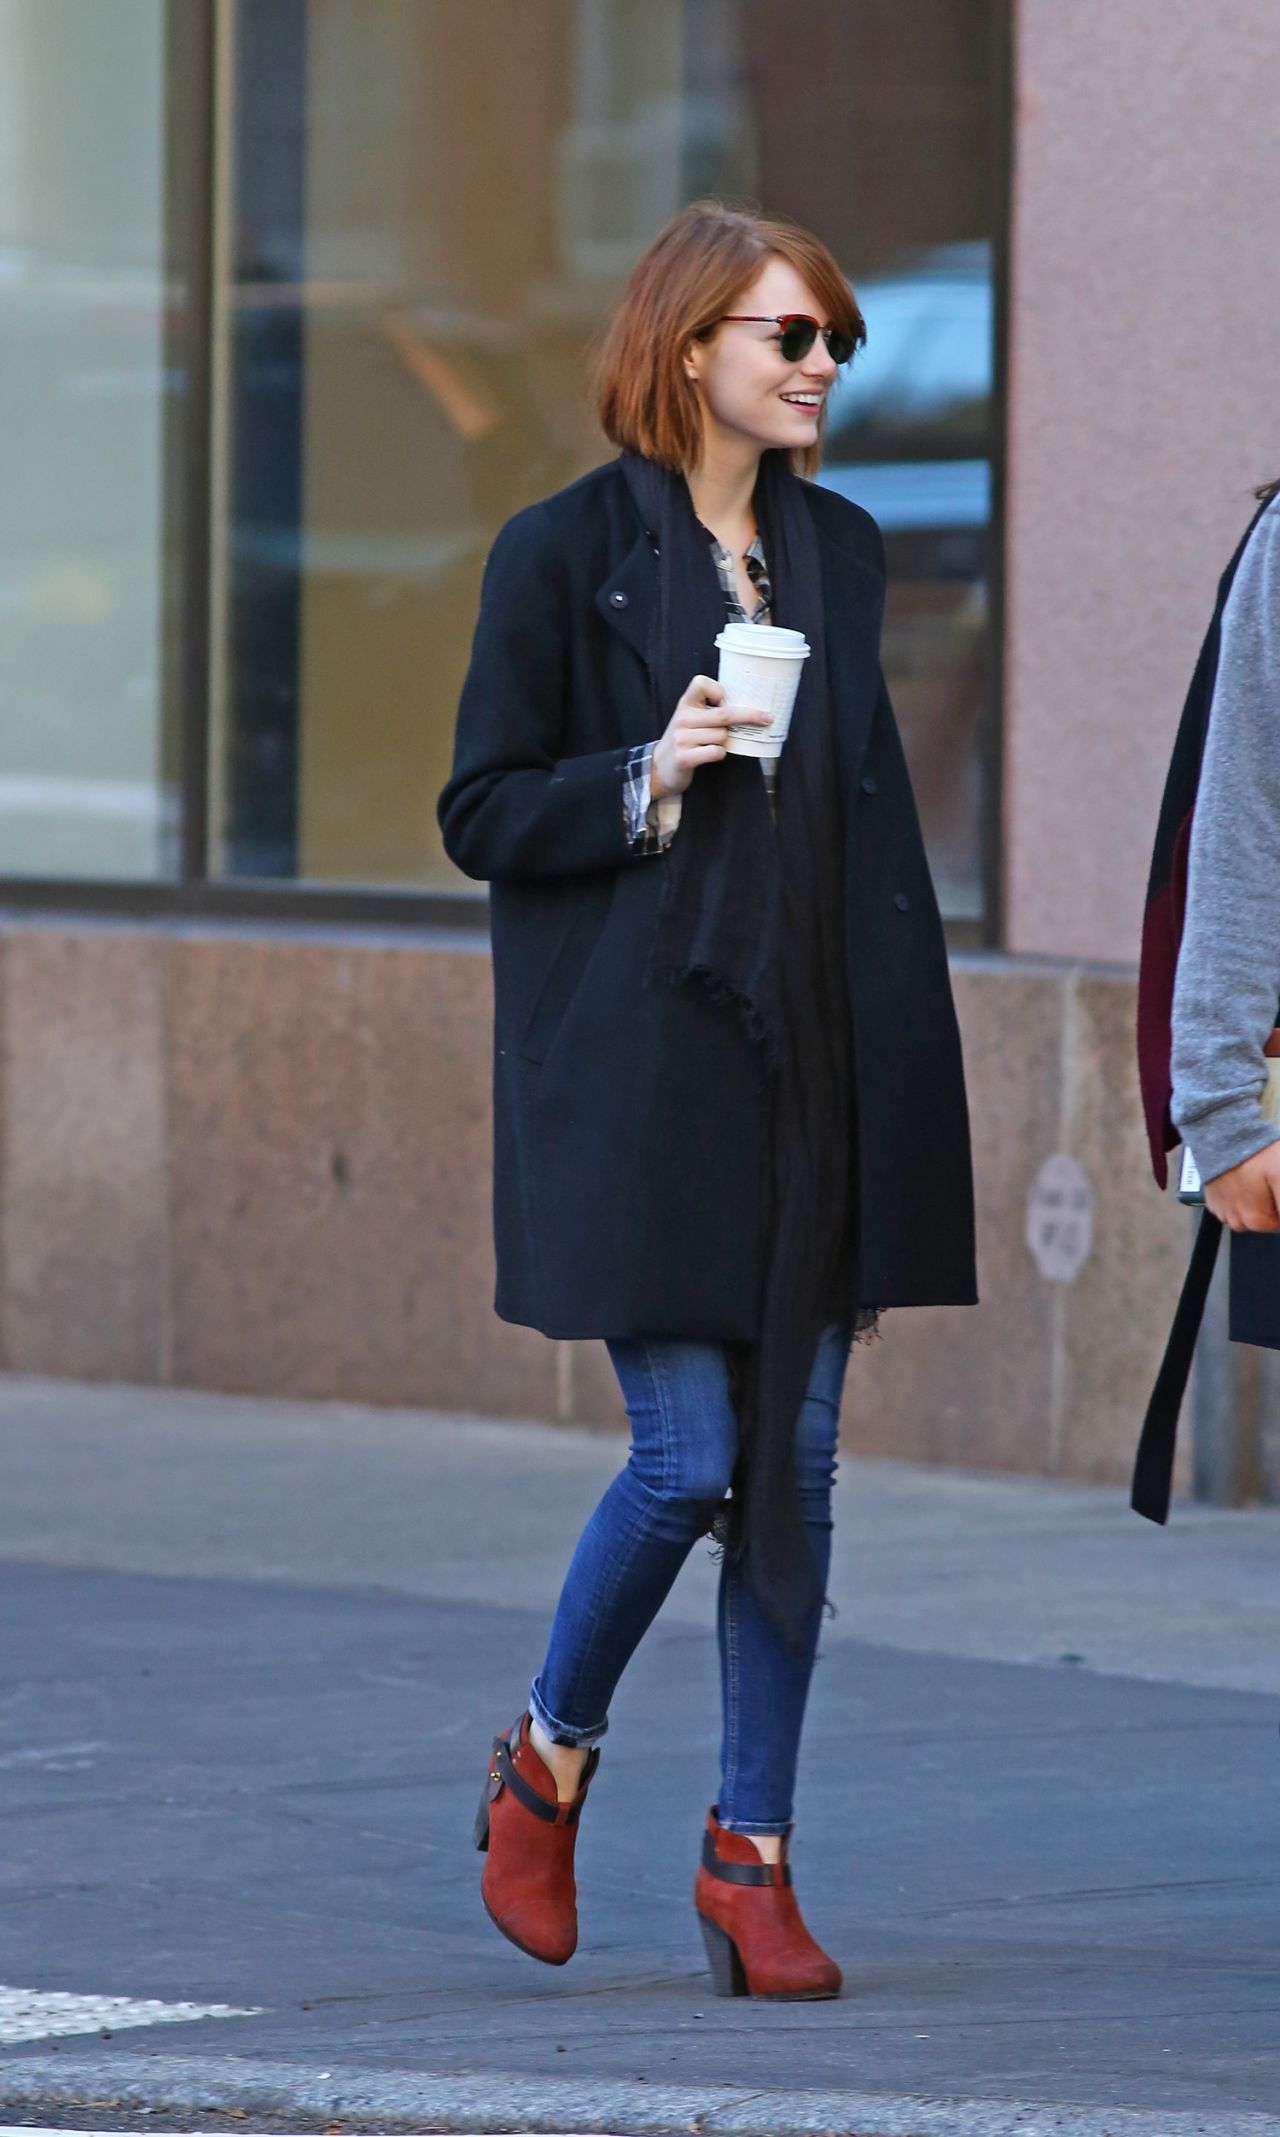 Emma Stone Couleur De Cheveux Emma Stone New York City 2014 Casual Celebs Fall